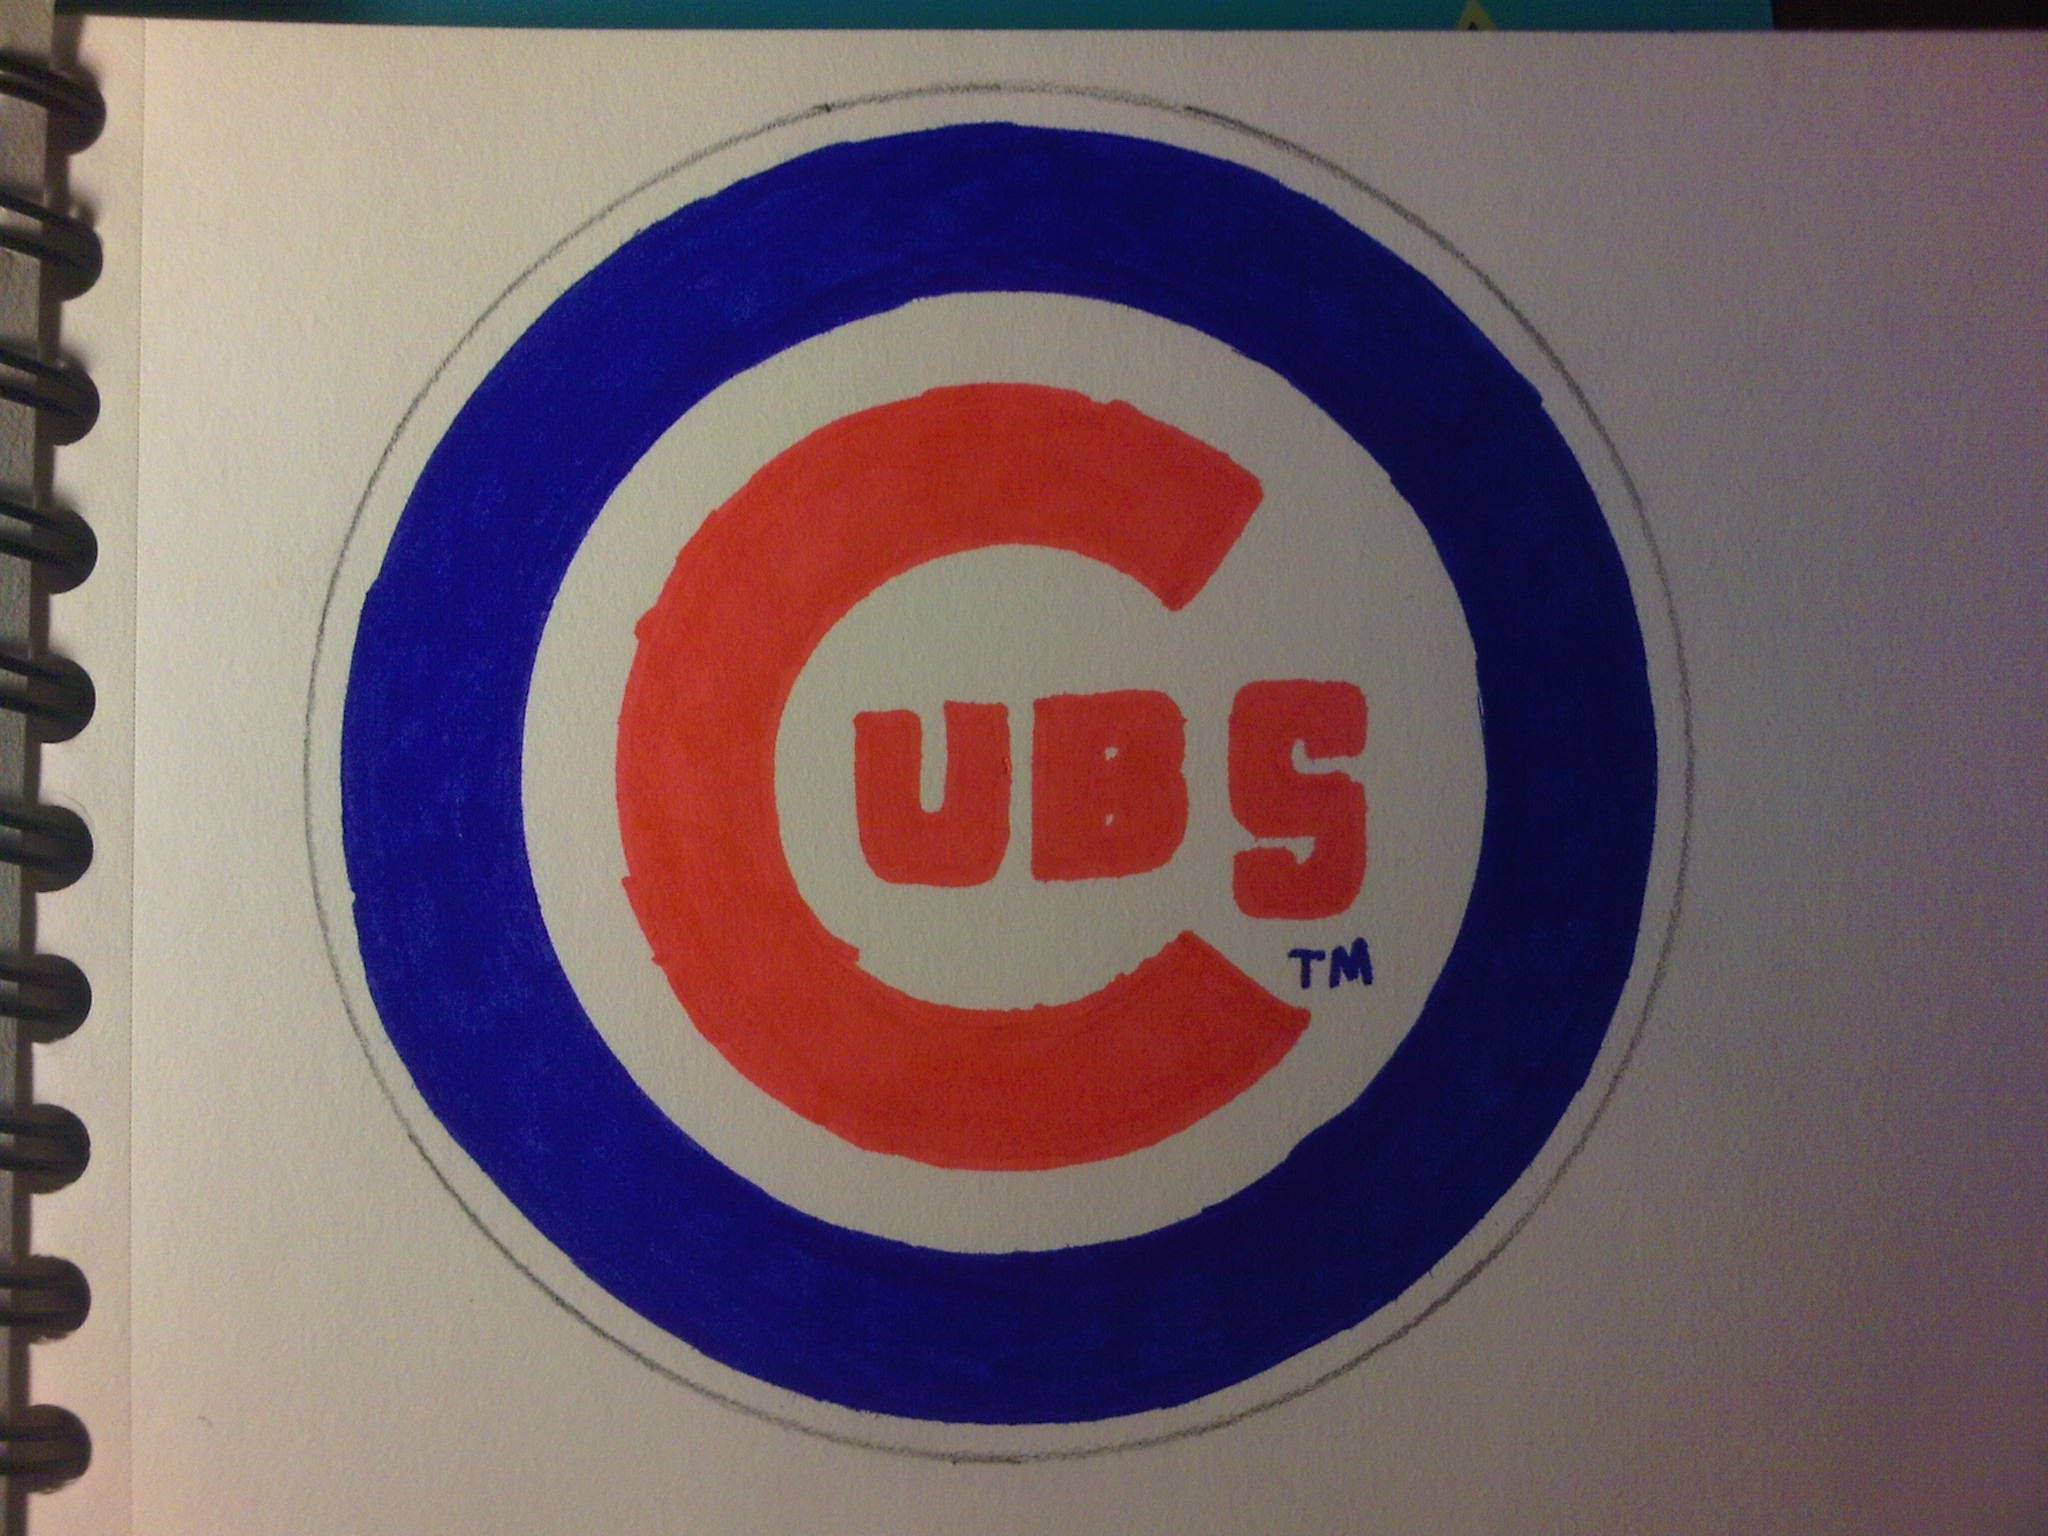 2048x1536 How To Draw The Chicago Cubs Logos